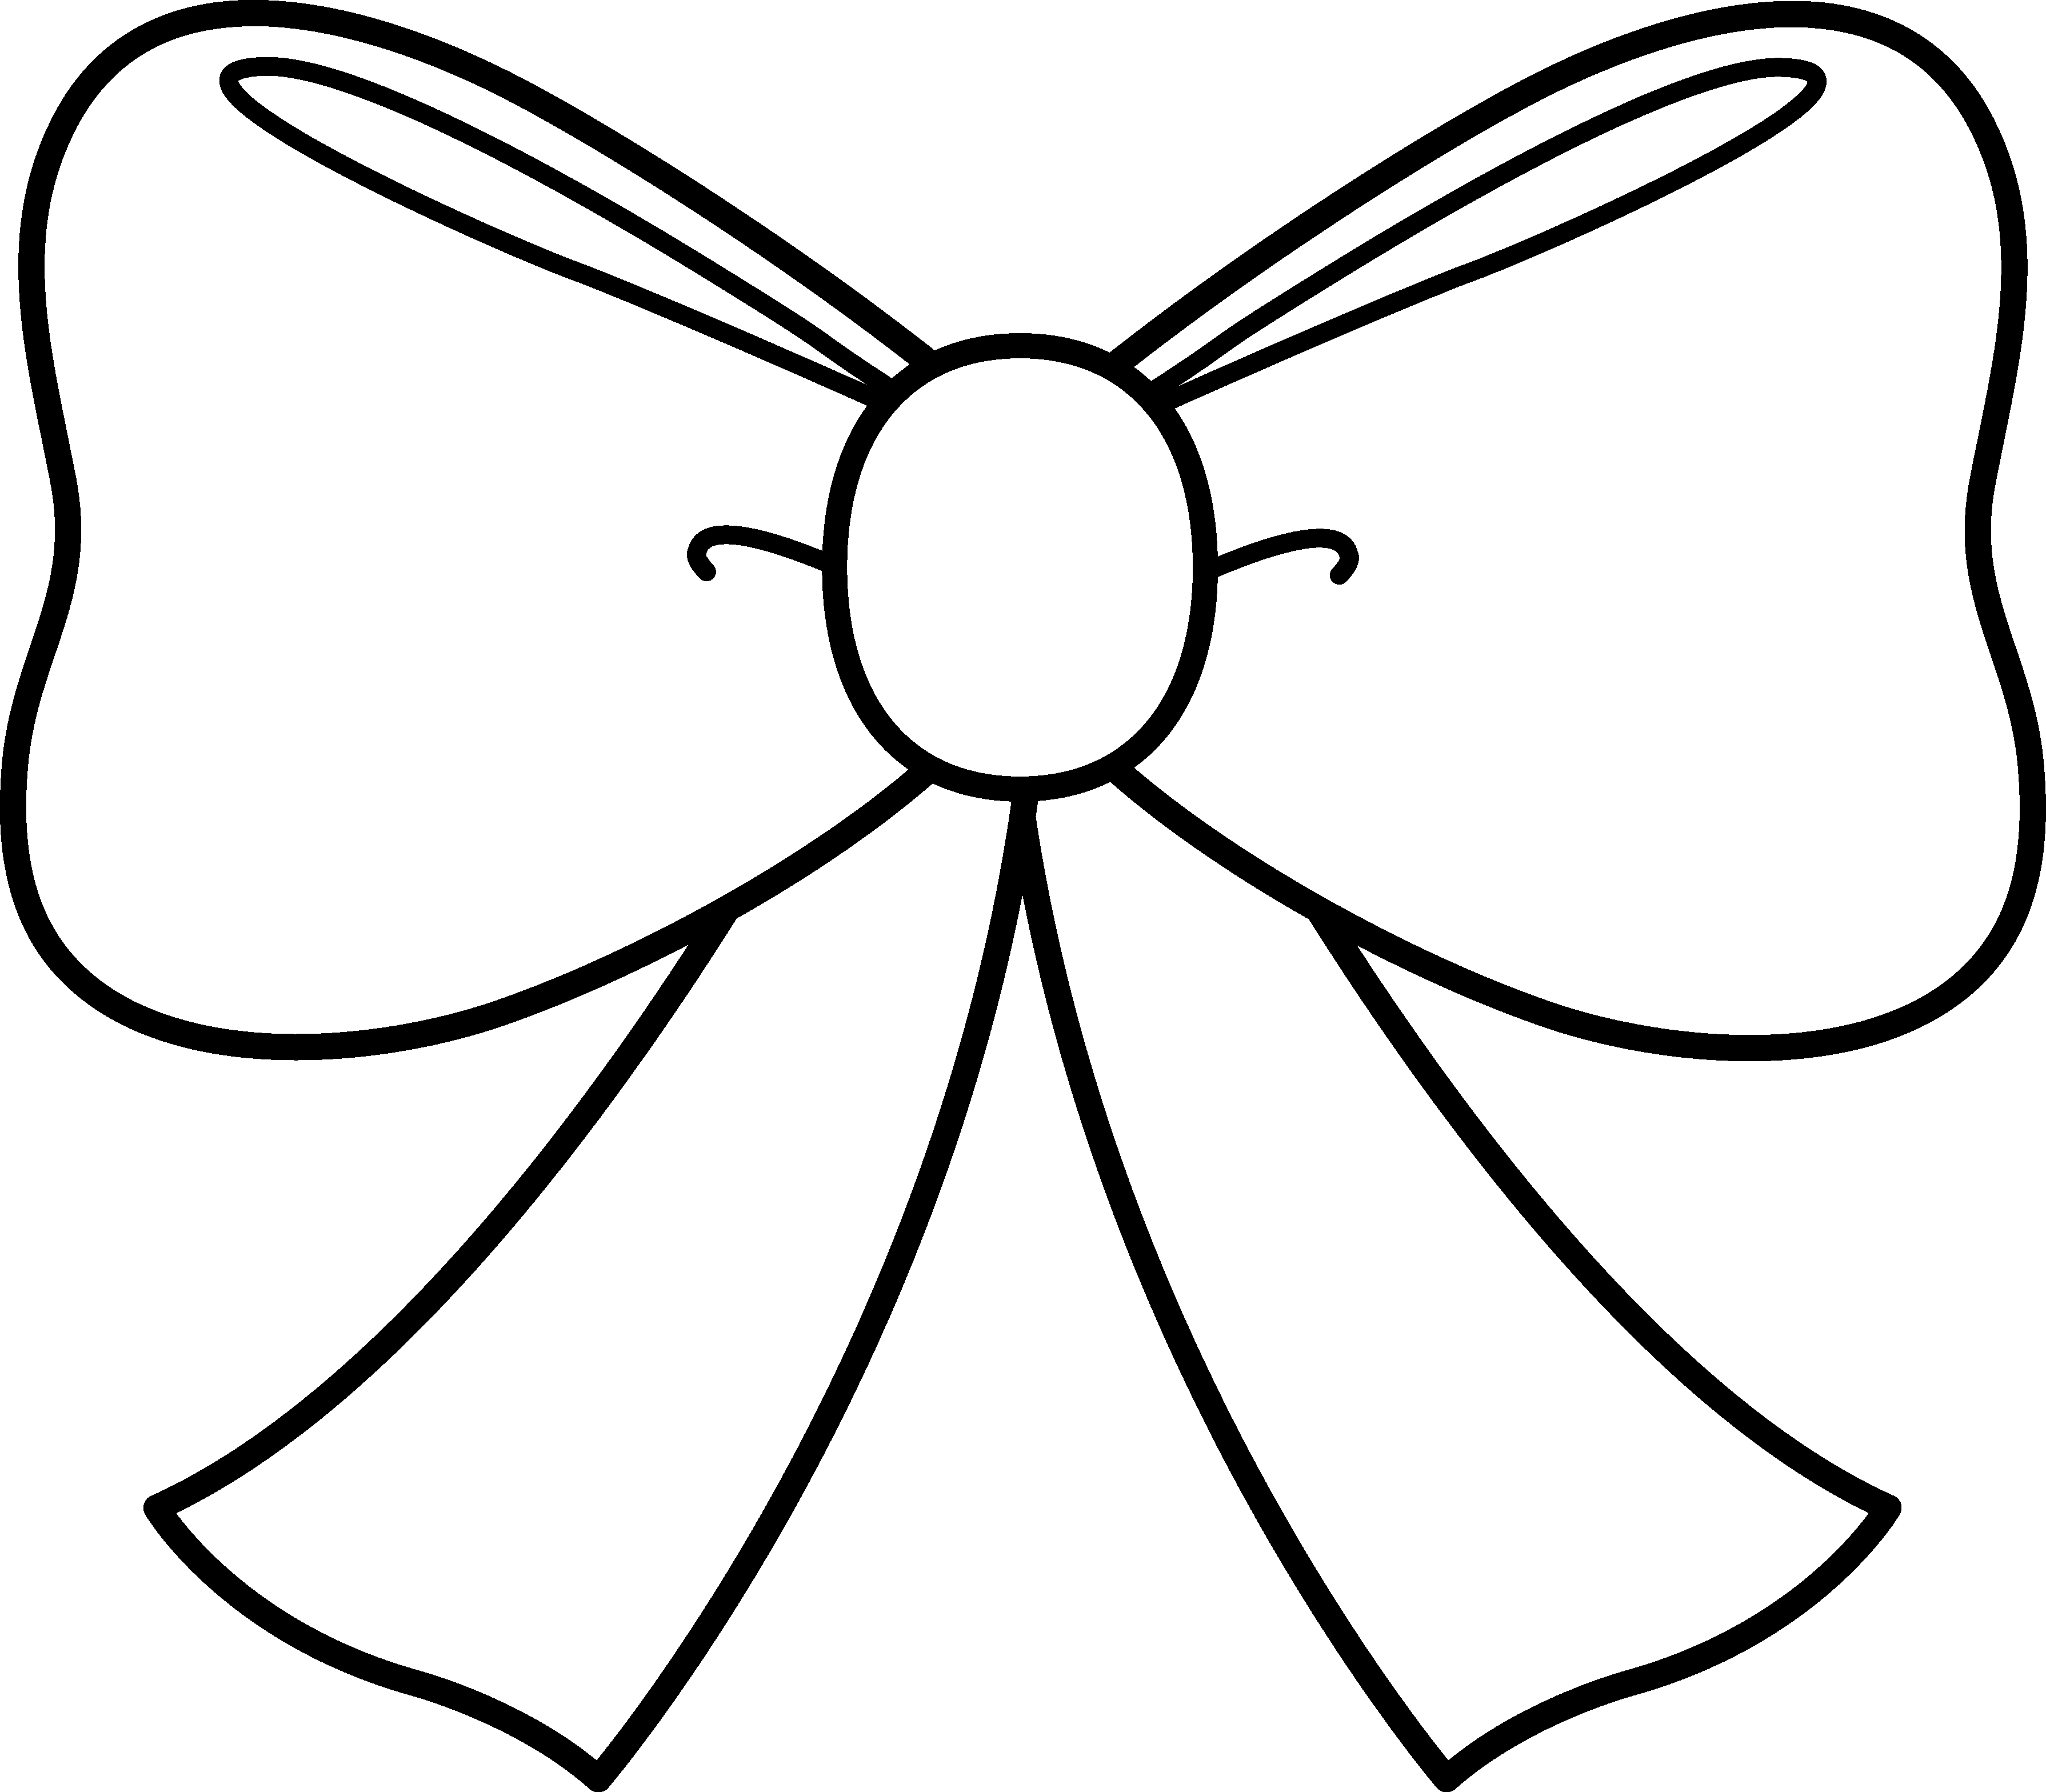 White ribbon bow png. Line drawing at getdrawings